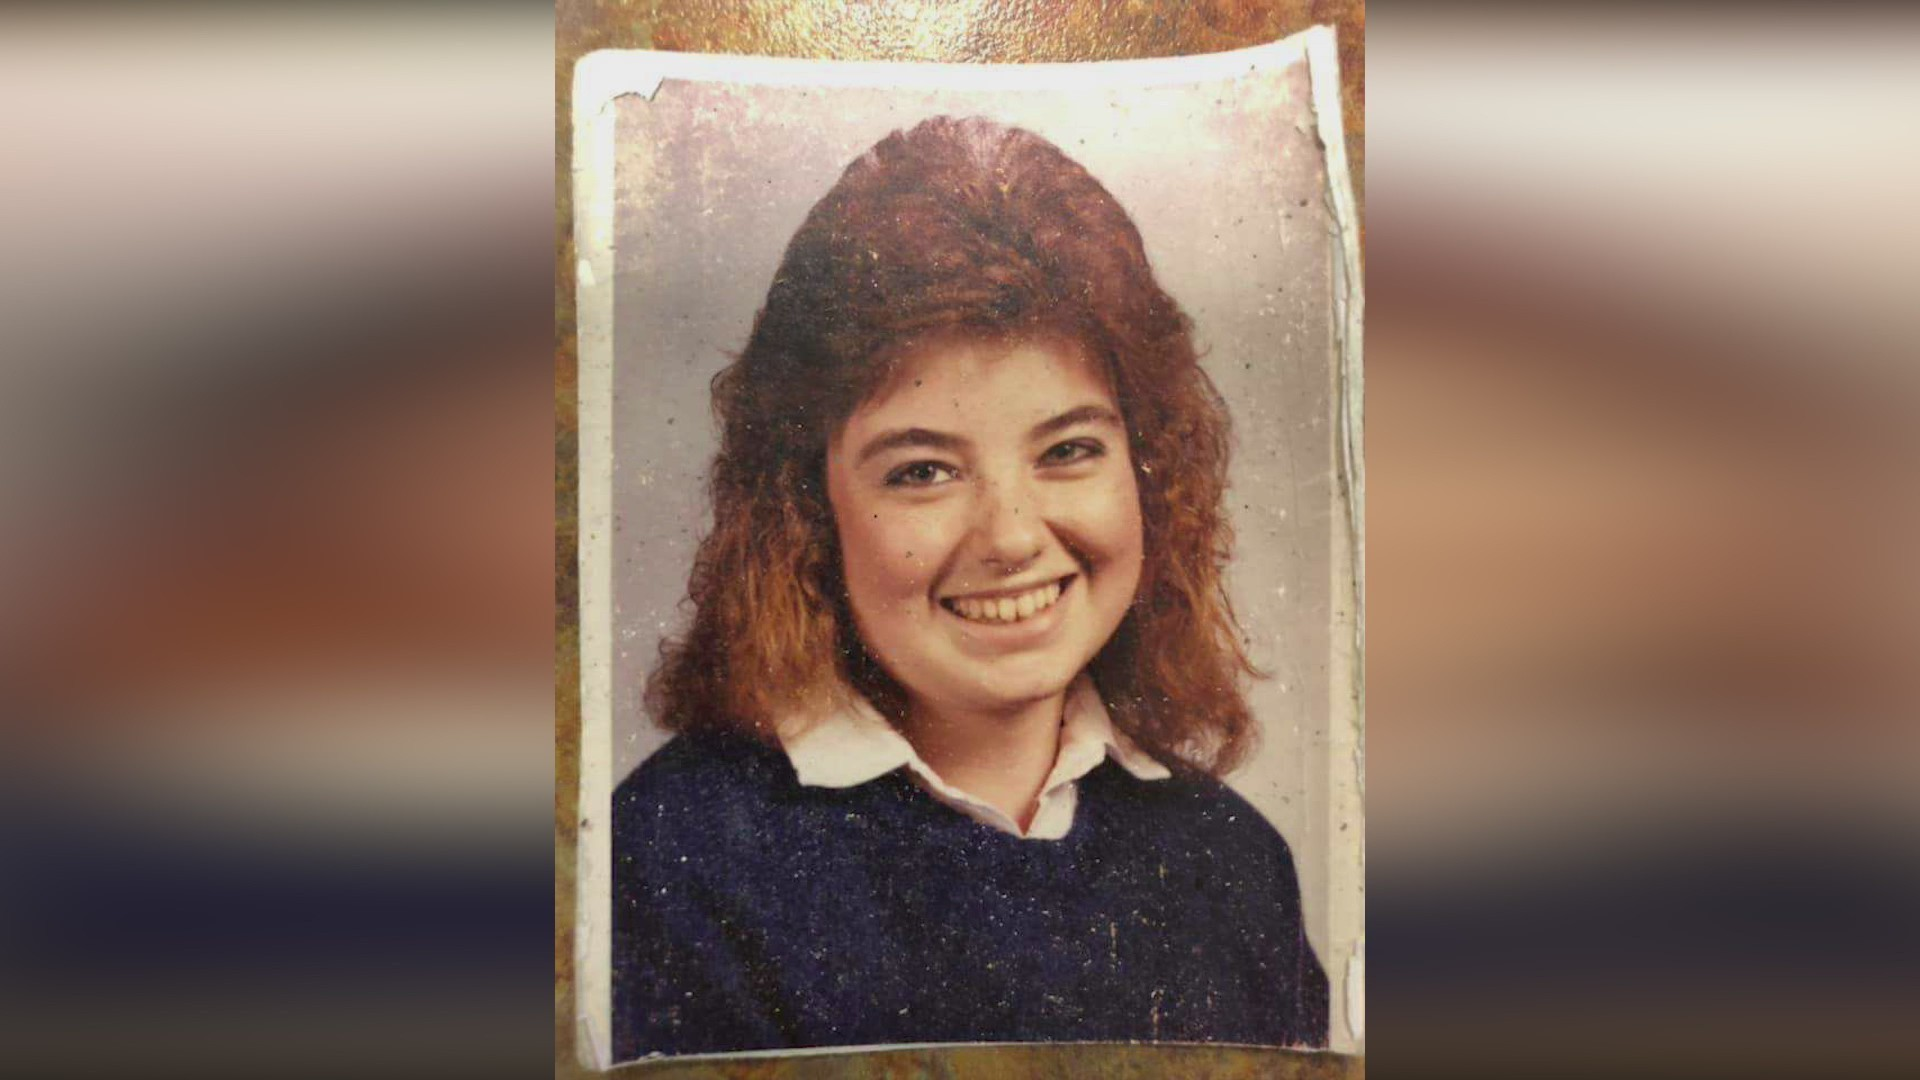 Woman's family still seeking answers 30 years after her murder